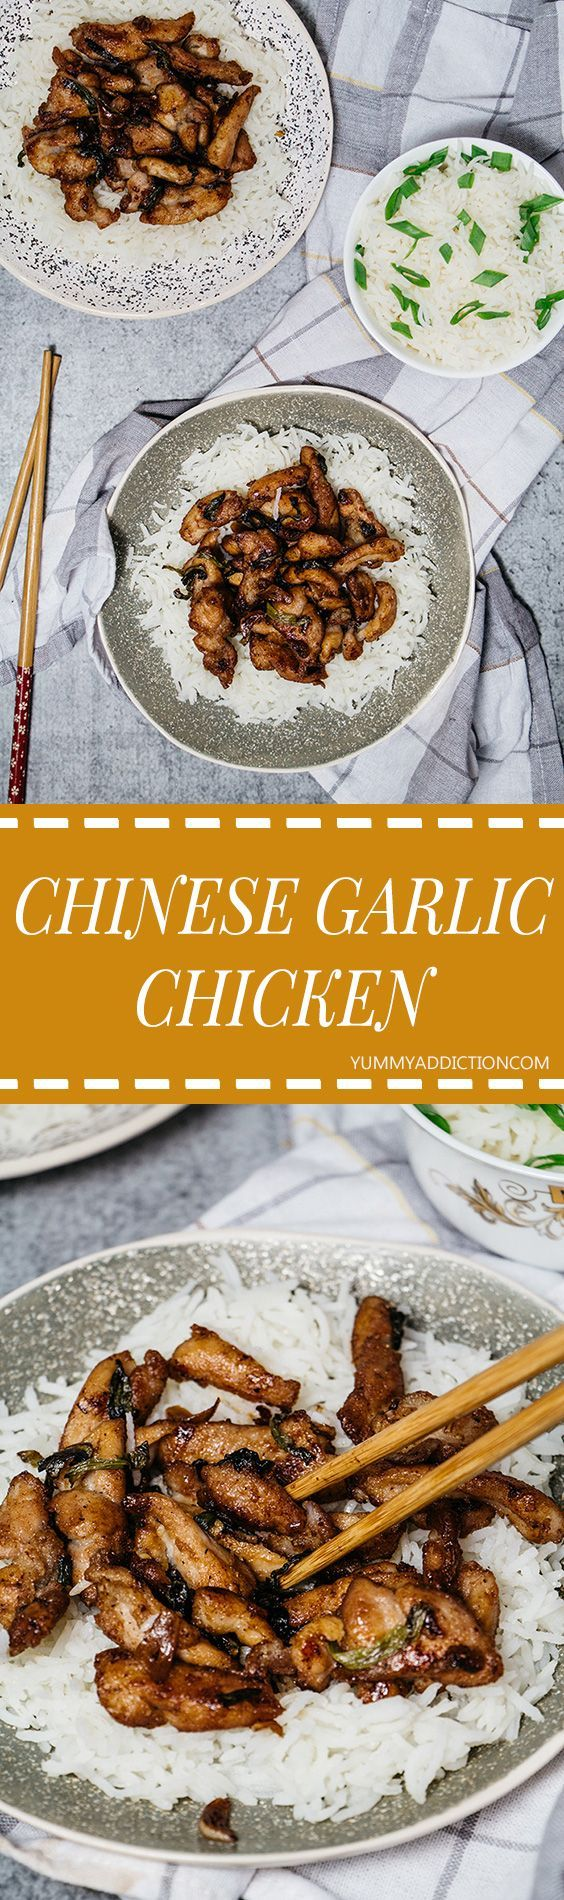 This Chinese Garlic Chicken is a homemade version of a very popular Asian takeout dish. It makes a great weeknight dinner or a party finger food! | yummyaddiction.com